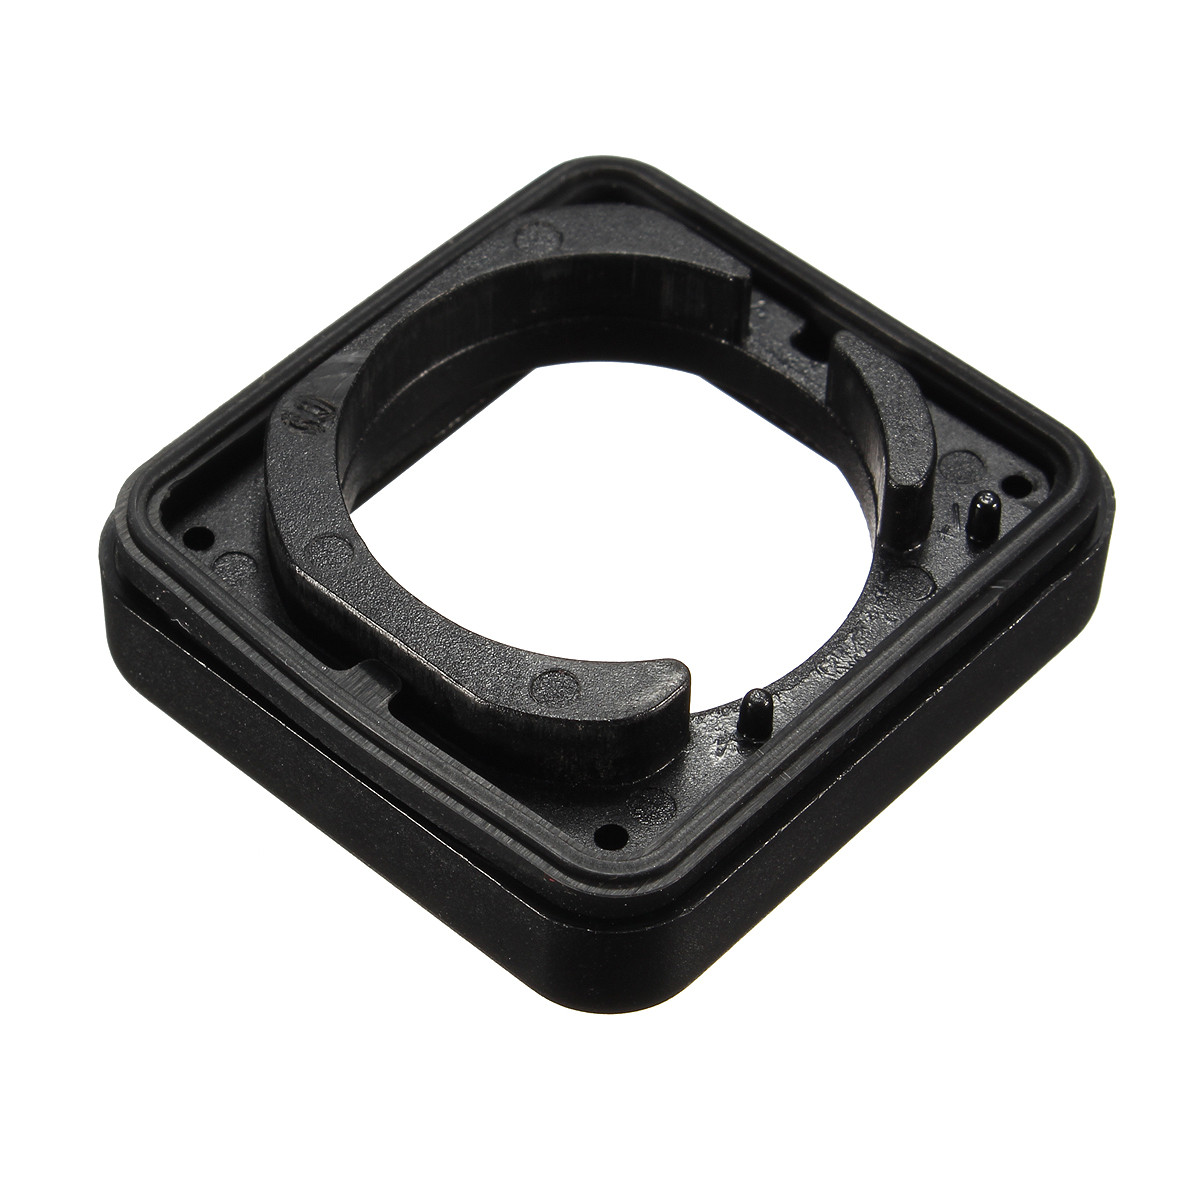 Waterproof Cover Lens Housing Protecting Replacement Kit For GoPro Hero 4 3 Plus